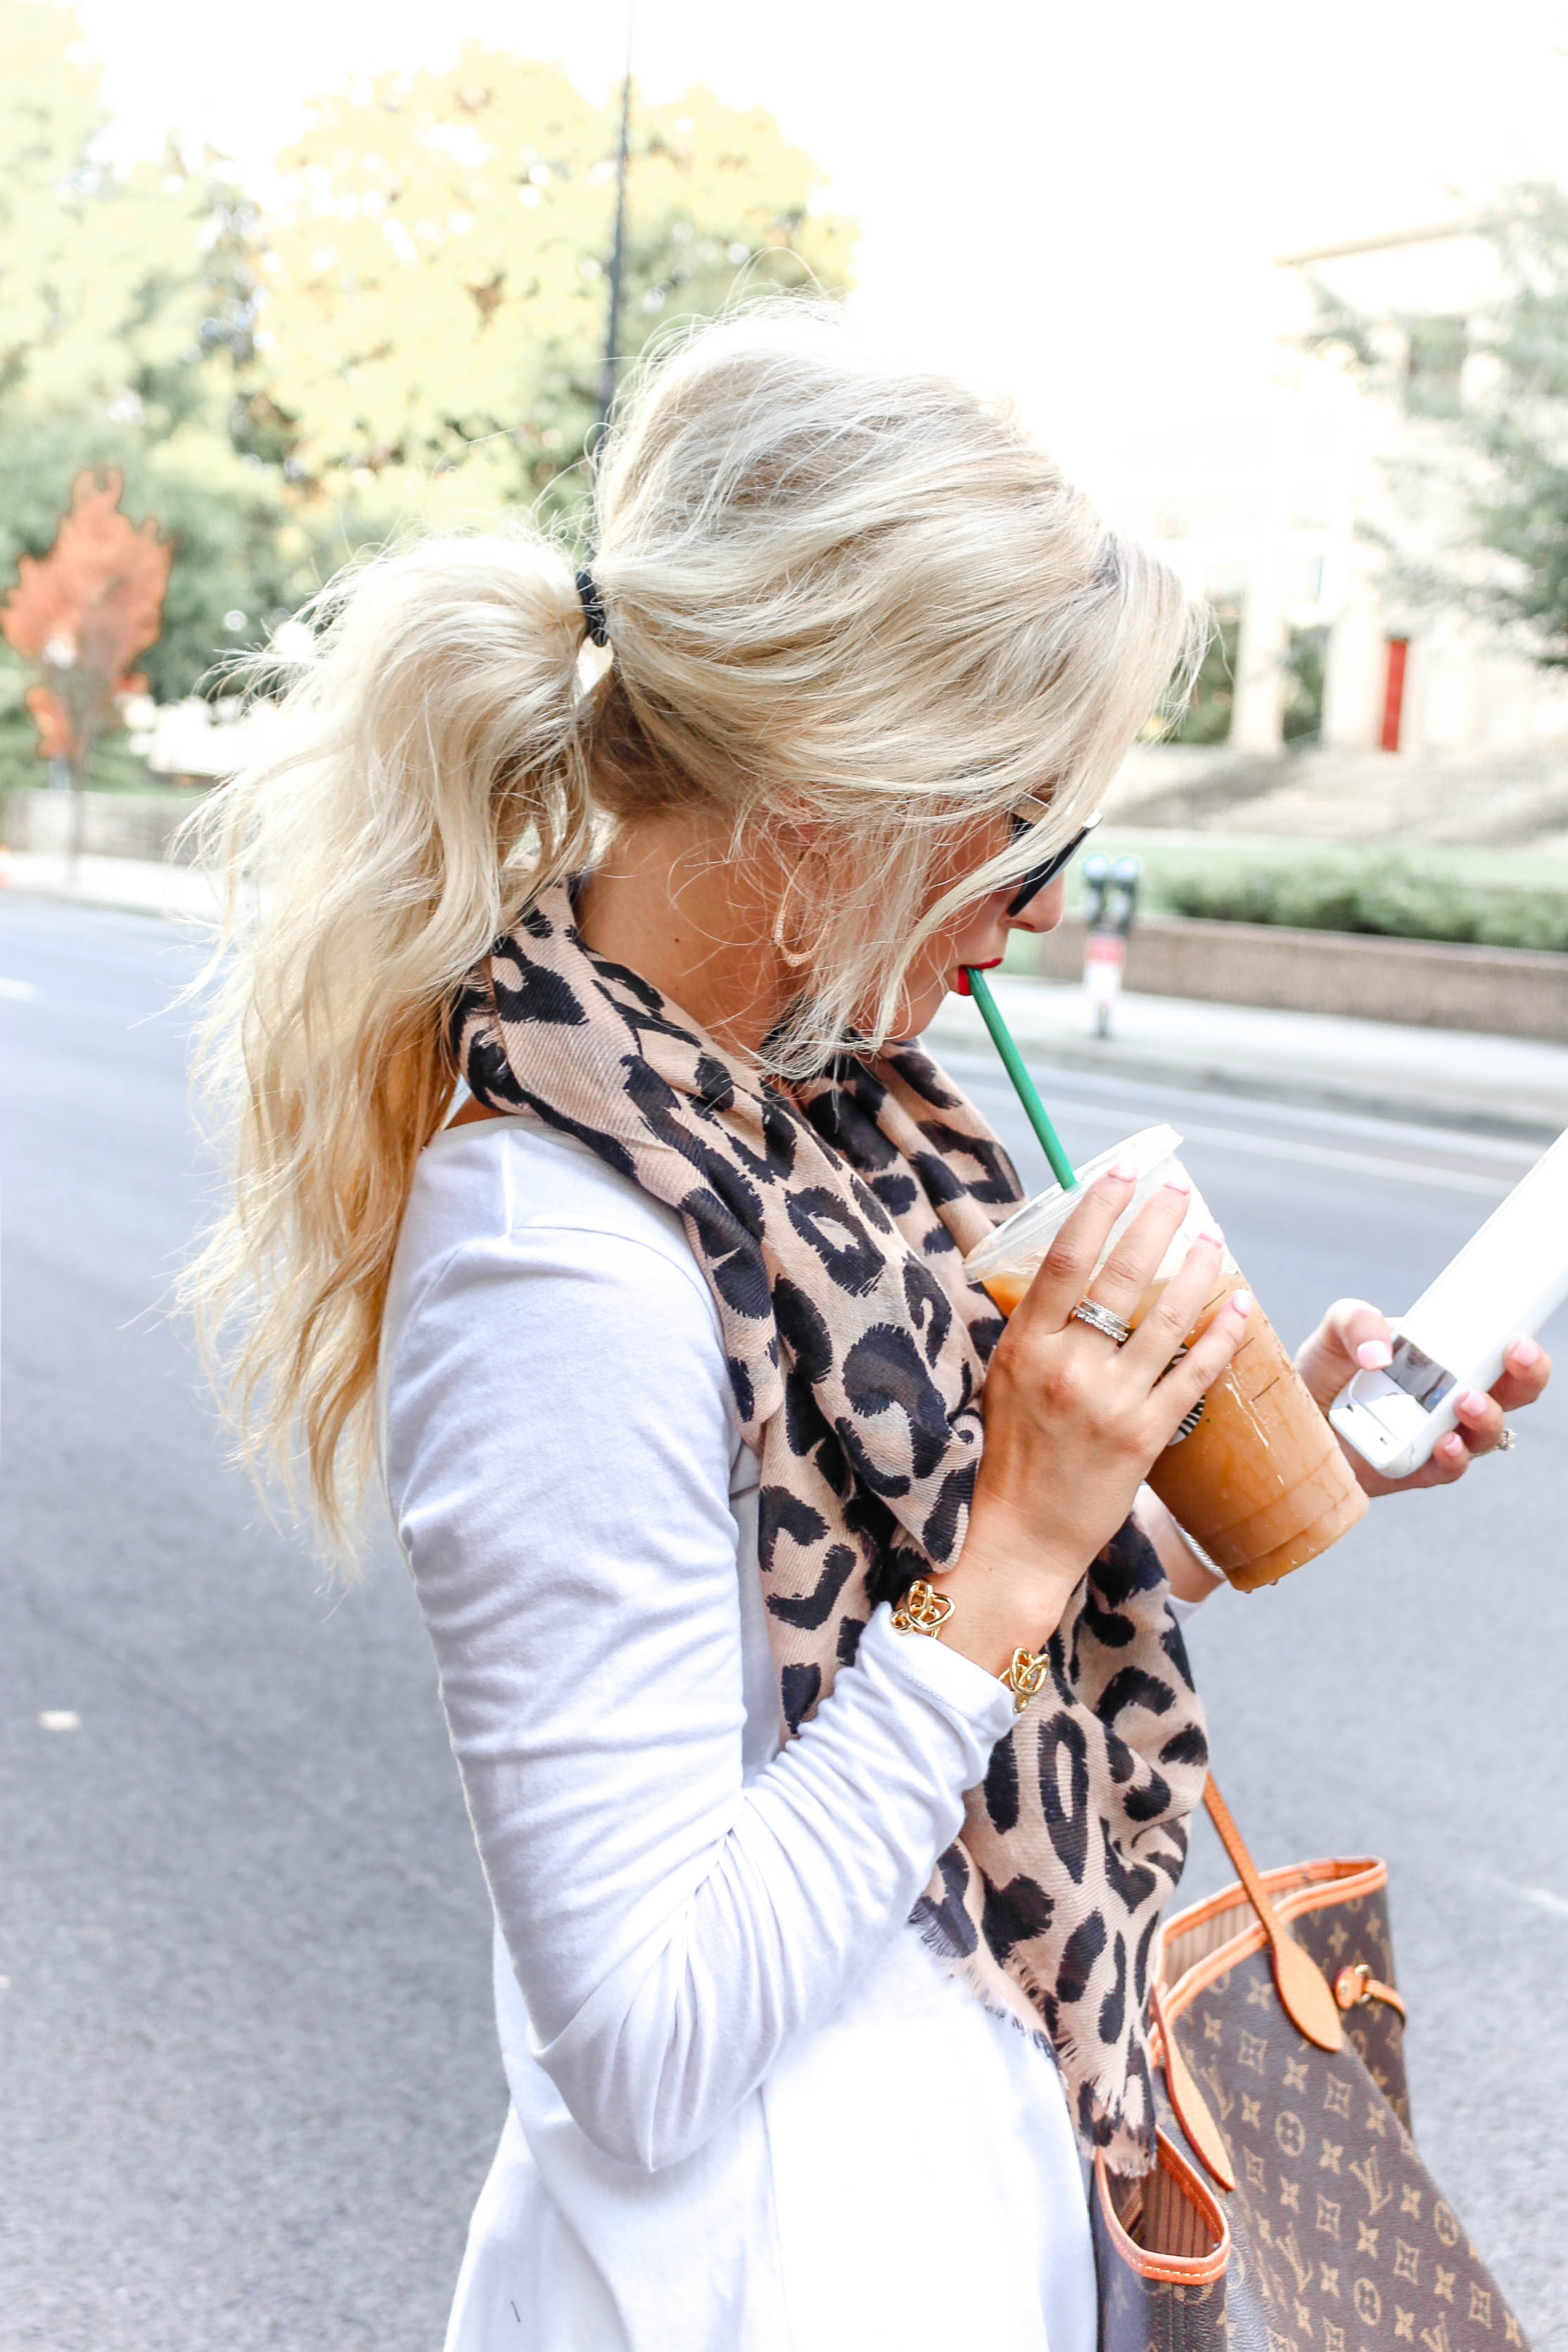 Transitional Fall Outfit + A Prayer for This World | love 'n' labels www.lovenlabels.com